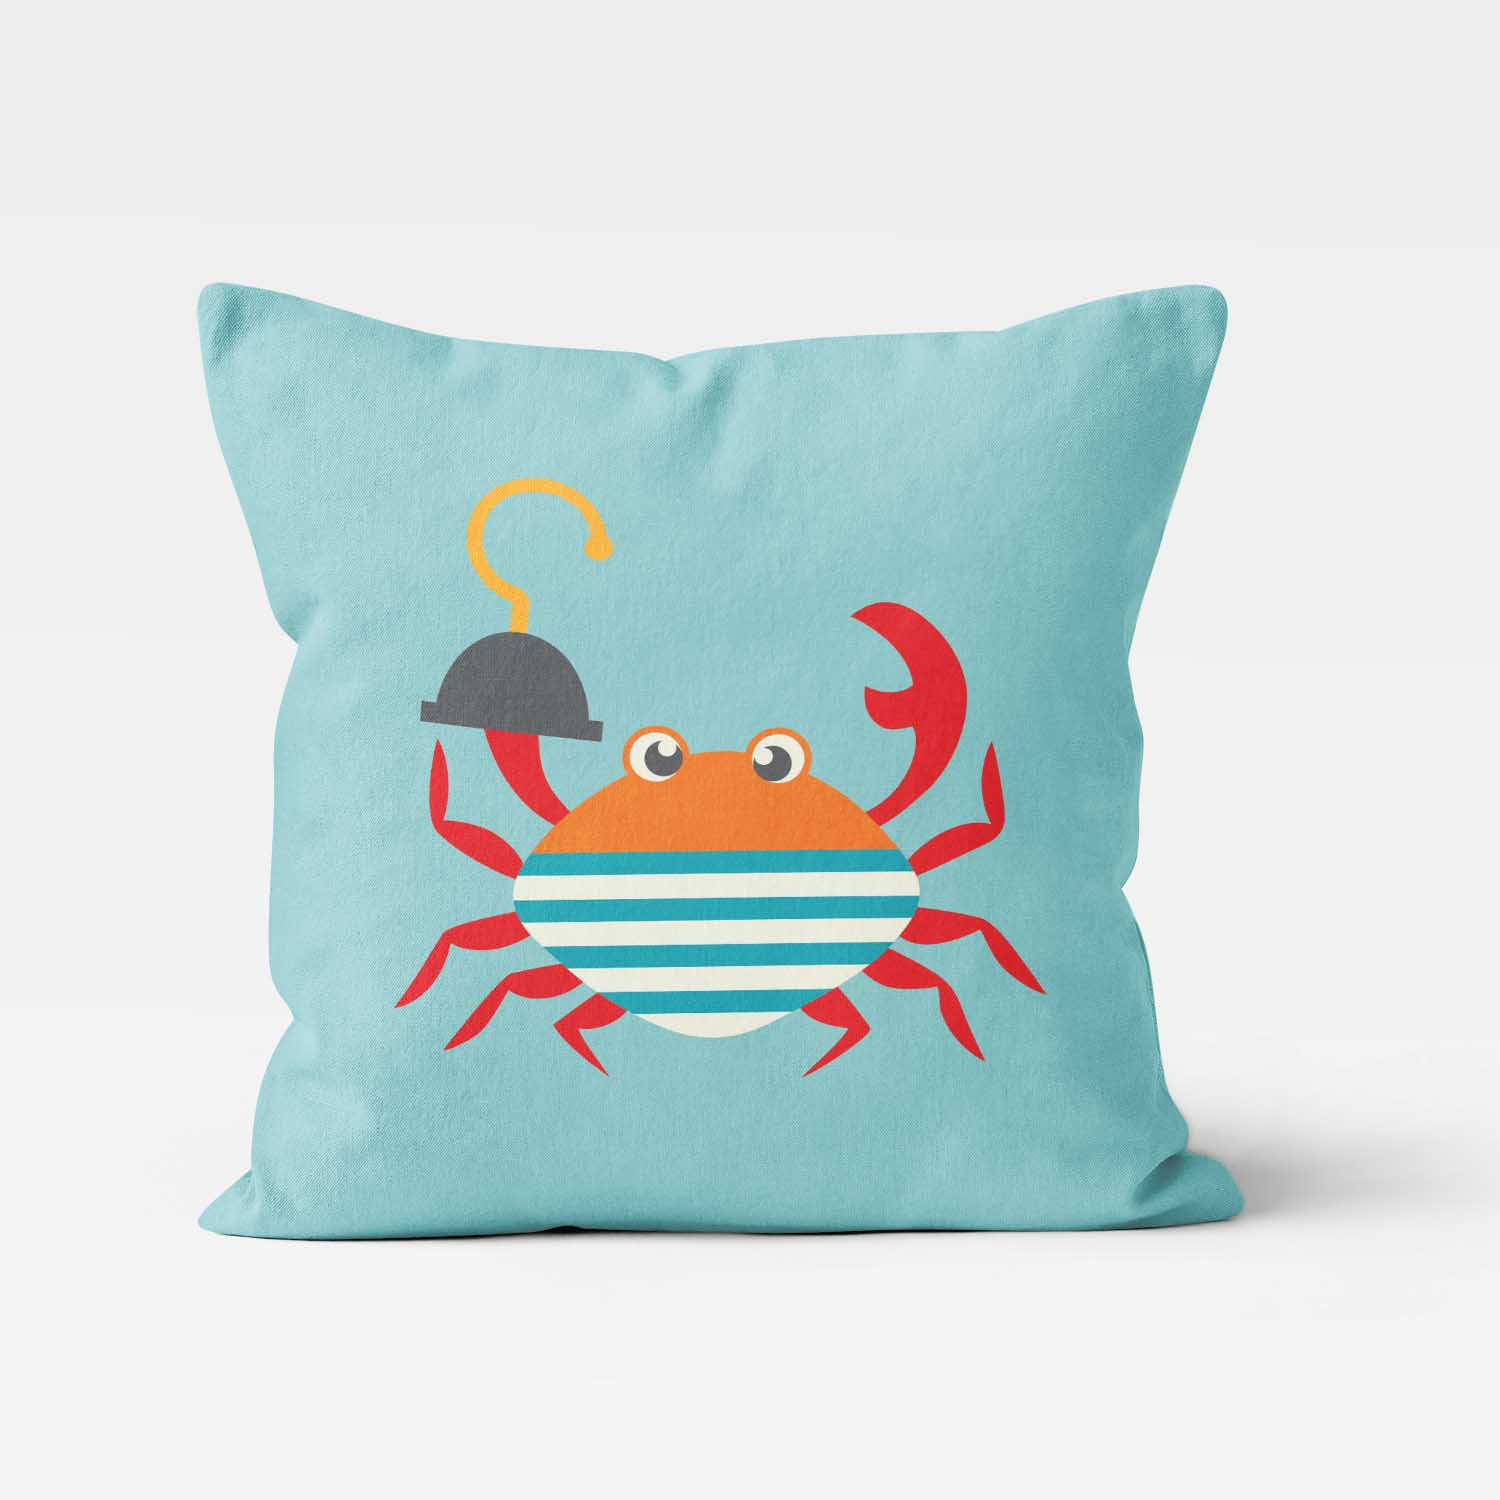 PKTP00006-AhoyMateyPirateAdventure-PILLOW3 Ahoy Matey! Pirate Adventure Crab Boys Kids Accent Throw Pillow Room Decor Accessories by Pickleberry Kids